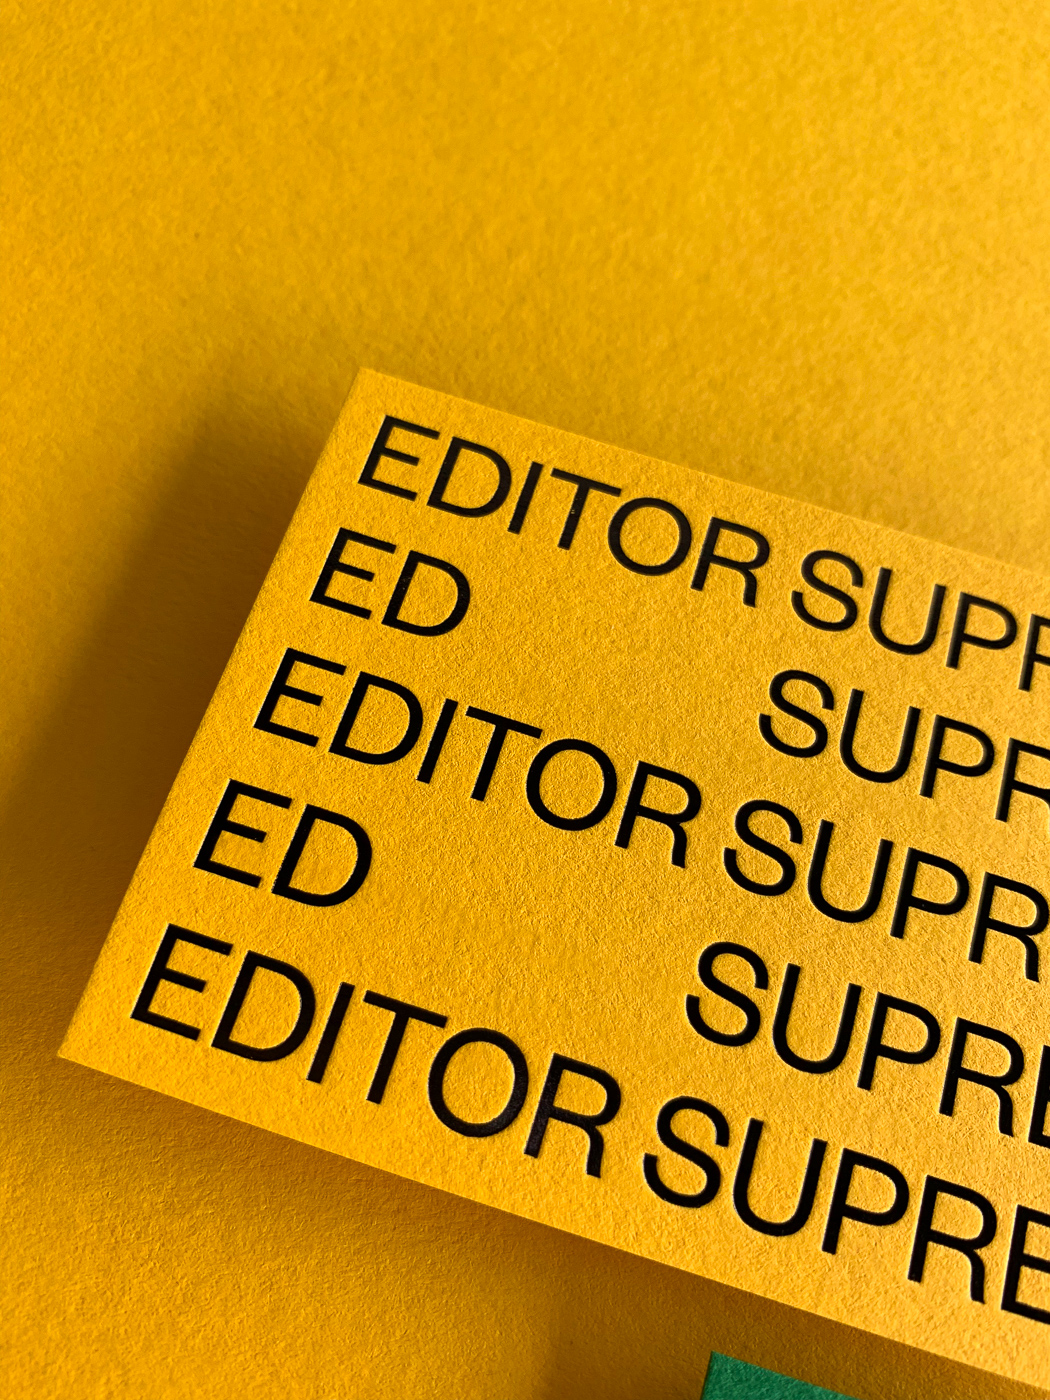 Black foil business cards for Ed Supreme on Colorplan 5